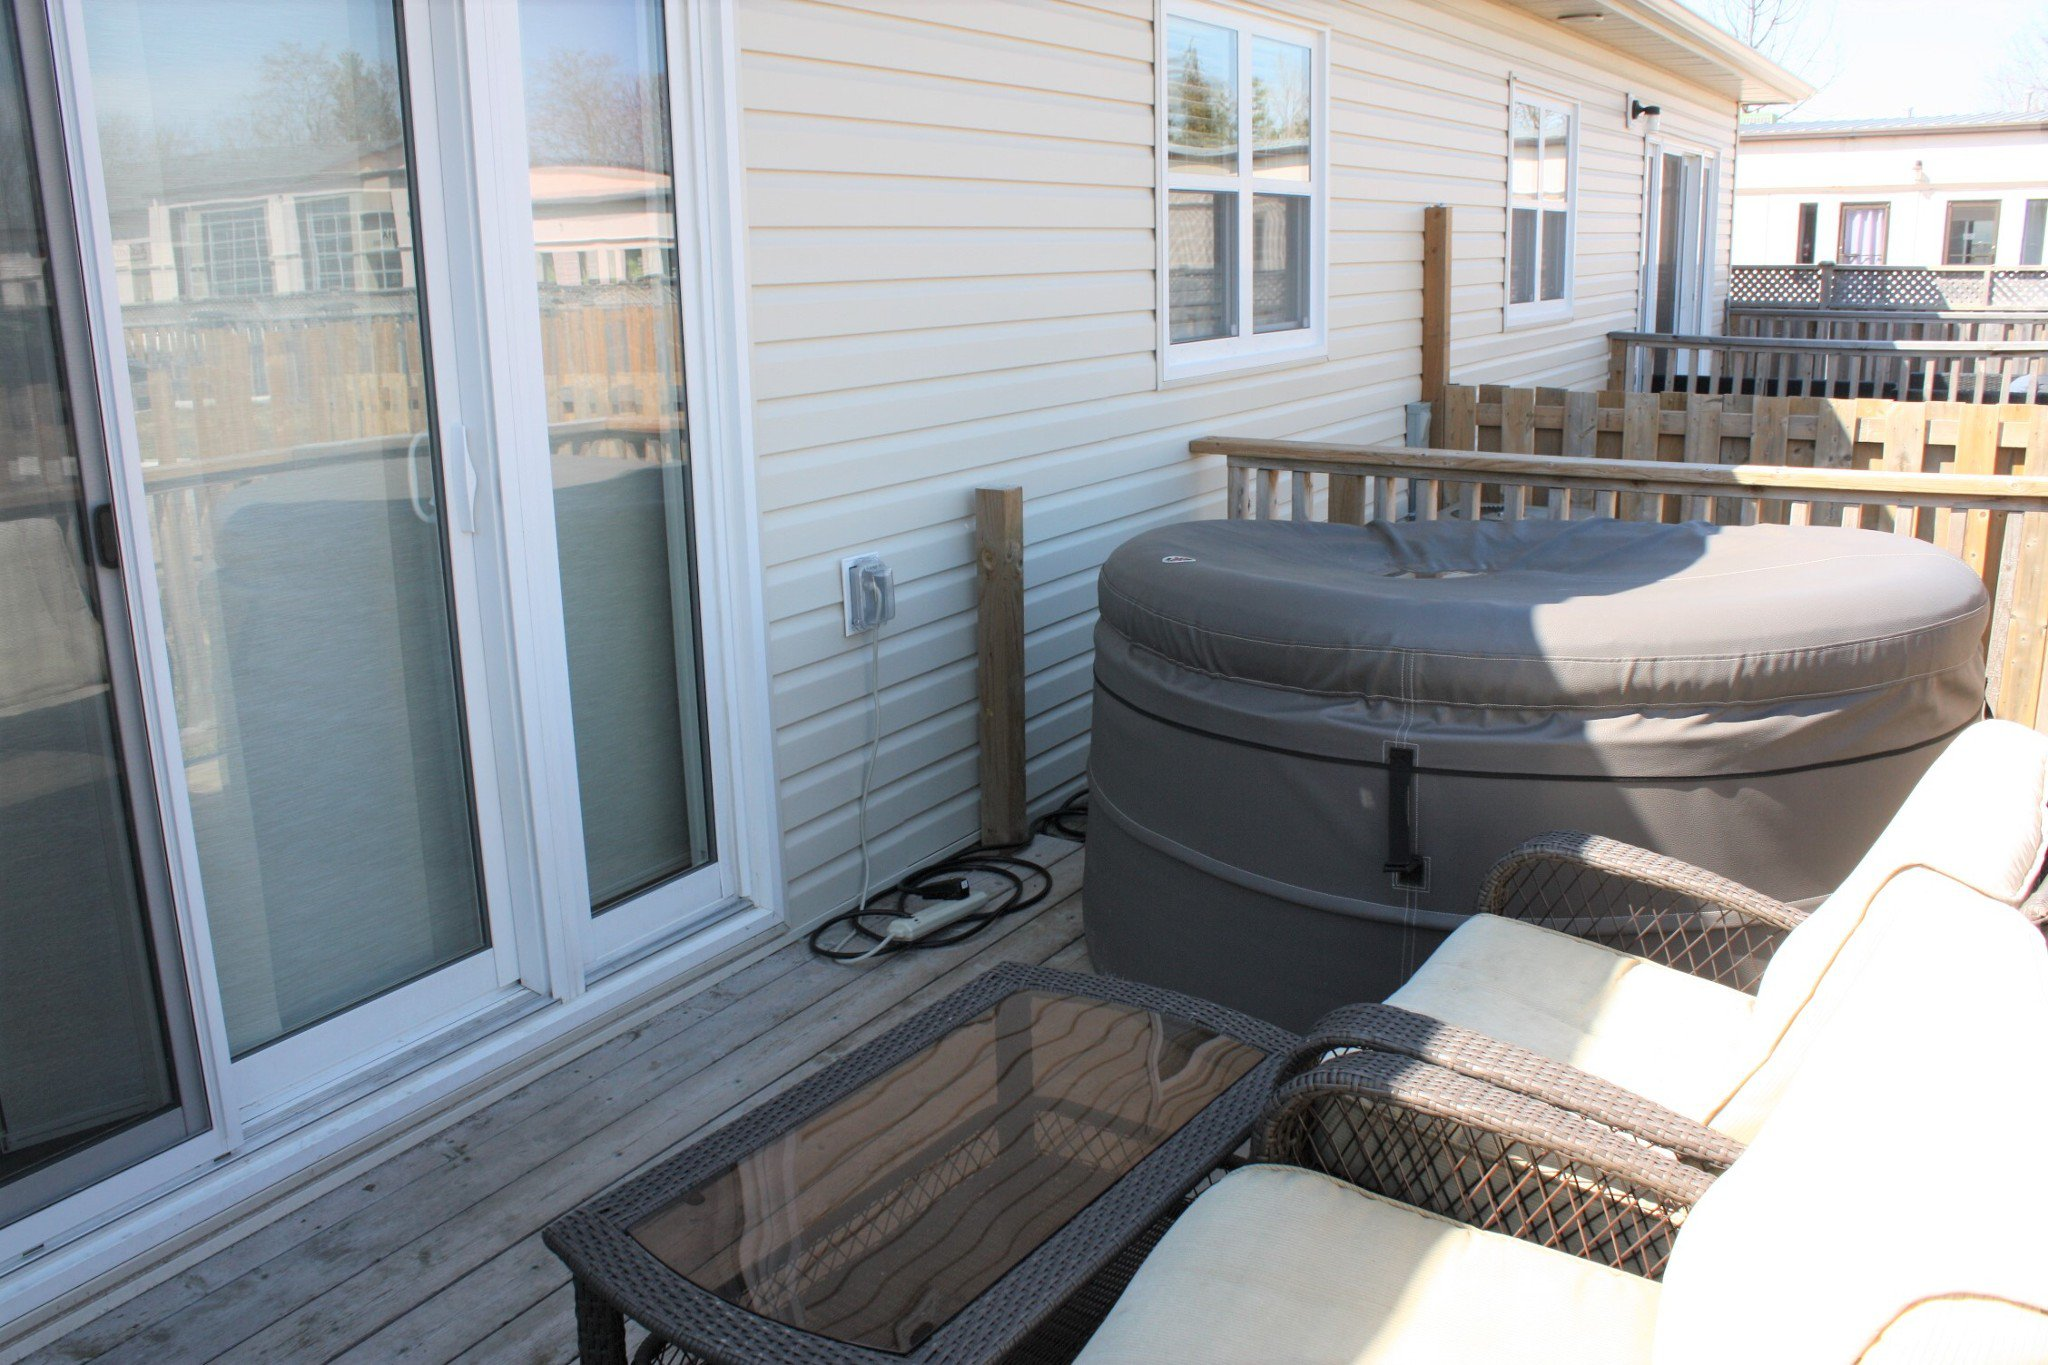 Photo 18: Photos: 706 Ontario Street in Cobourg: Residential Attached for sale : MLS®# 254262